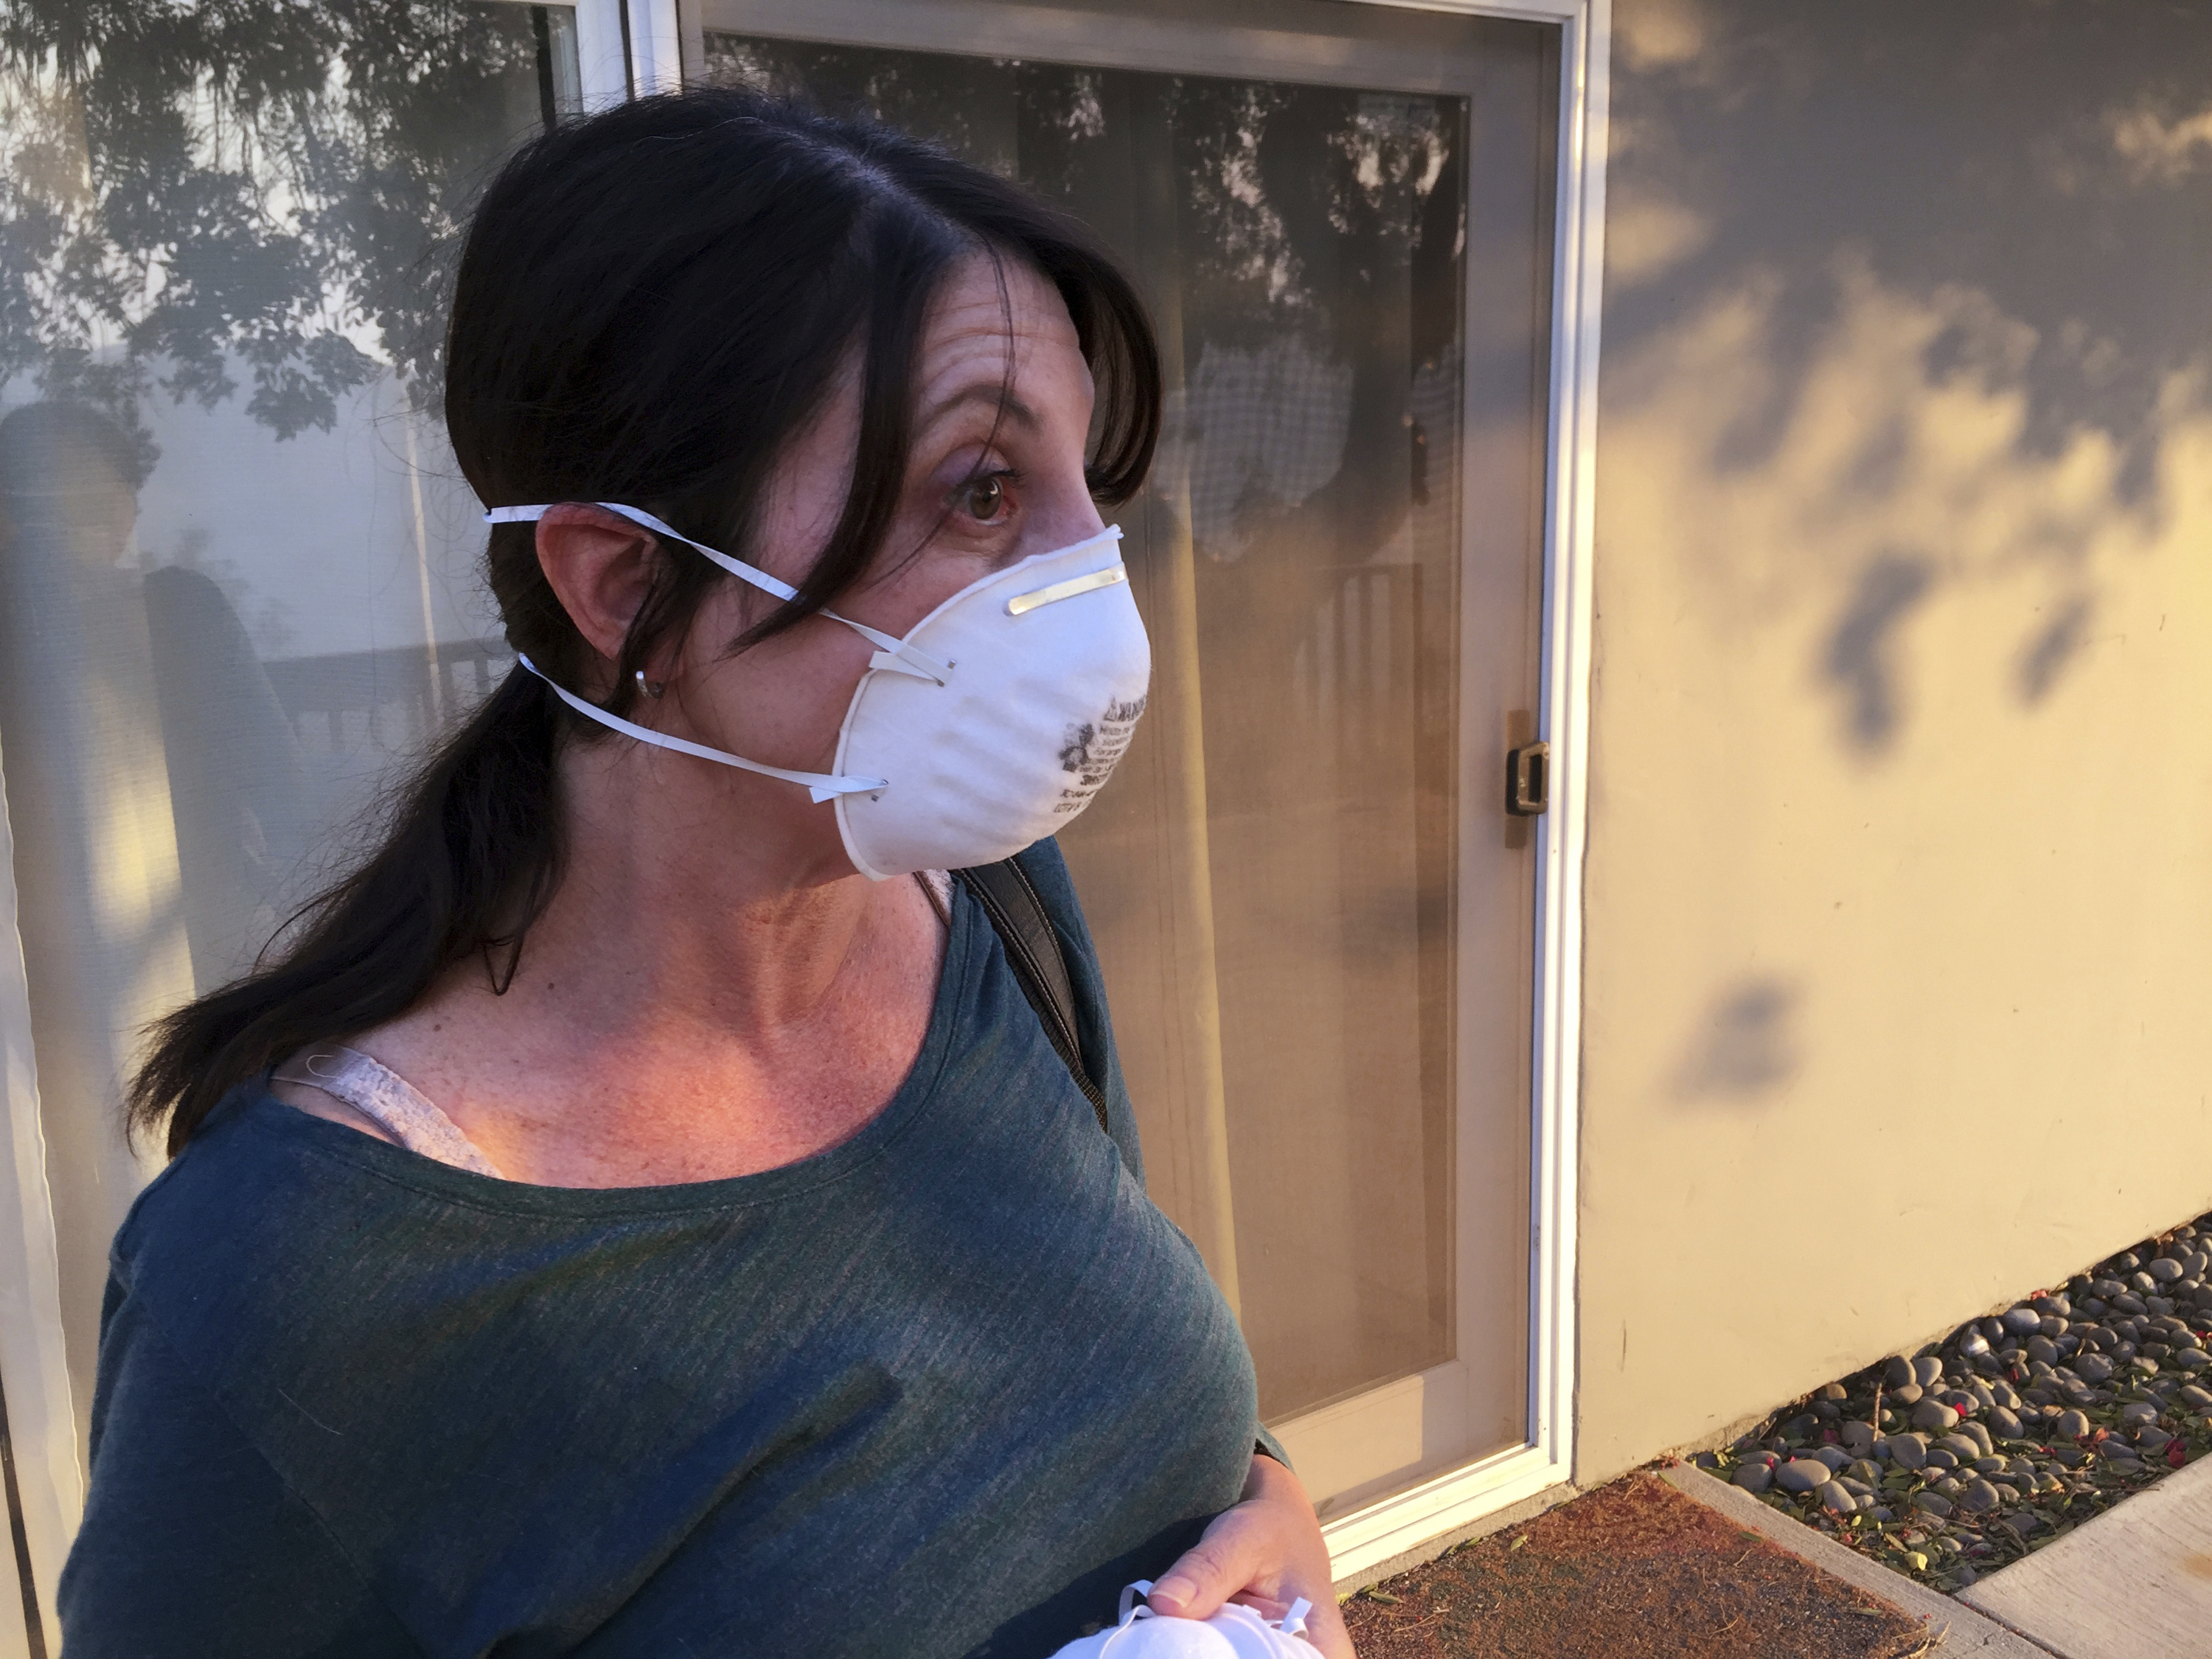 Resident Melissa Rosenzweig worries about losing her family home in the second round of weather coming in Ventura, Calif., Wednesday, Dec.6, 2017. The Rosenzweig's house nearly didn't make it this last time, and the house across the street from them burnt down in the Thomas Fire. Wind-driven fires have raced through California communities for the second time in two months, leaving hundreds of homes feared lost and uprooted tens of thousands of people. The most damaging fire is in Ventura County northwest of Los Angeles, where more than 100 square miles (259 sq. kilometers) and numerous homes have burned. (AP Photo/Amanda Lee Myers)